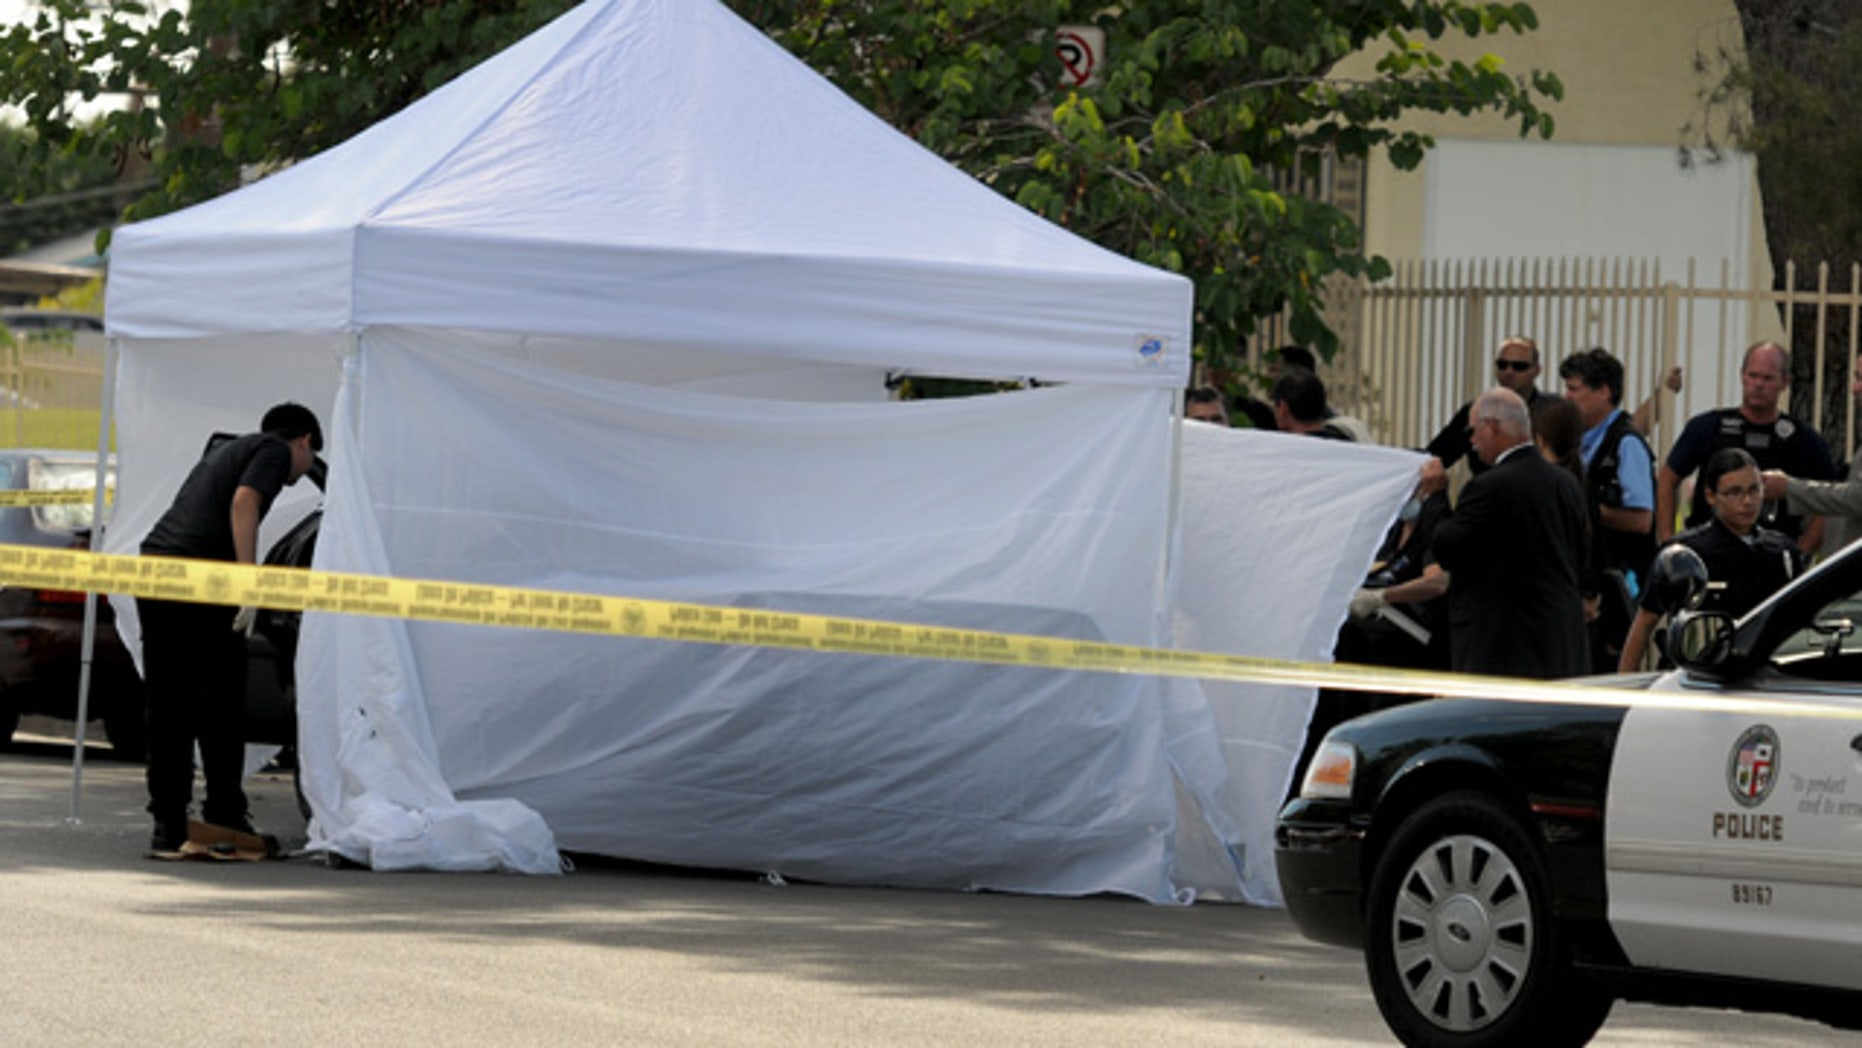 August 24, 2014: Los Angeles Police Department officers investigate the scene of a shooting where one person was killed near the 14400 block of Polk Street in Sylmar, Calif. (AP Photo/Los Angeles Daily News, Dean Musgrove)